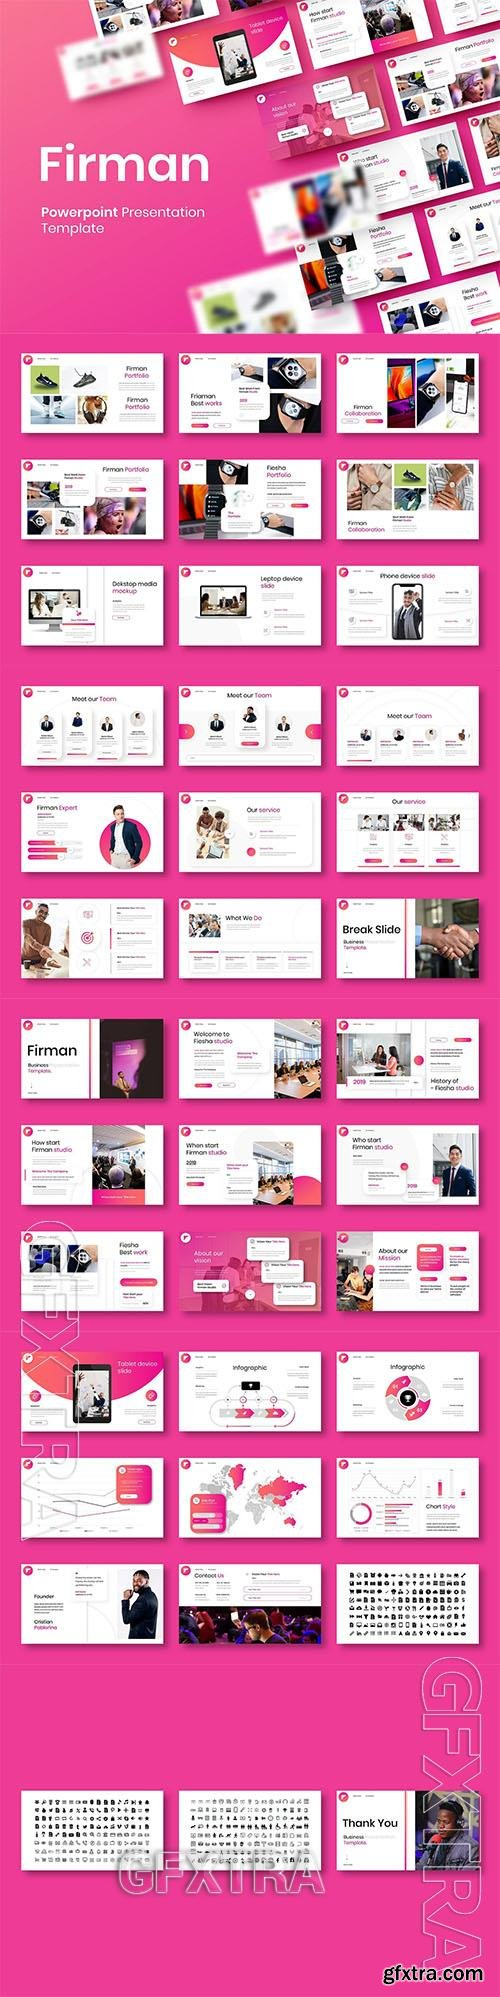 Firman - Business Powerpoint, Keynote and Google Slides Template